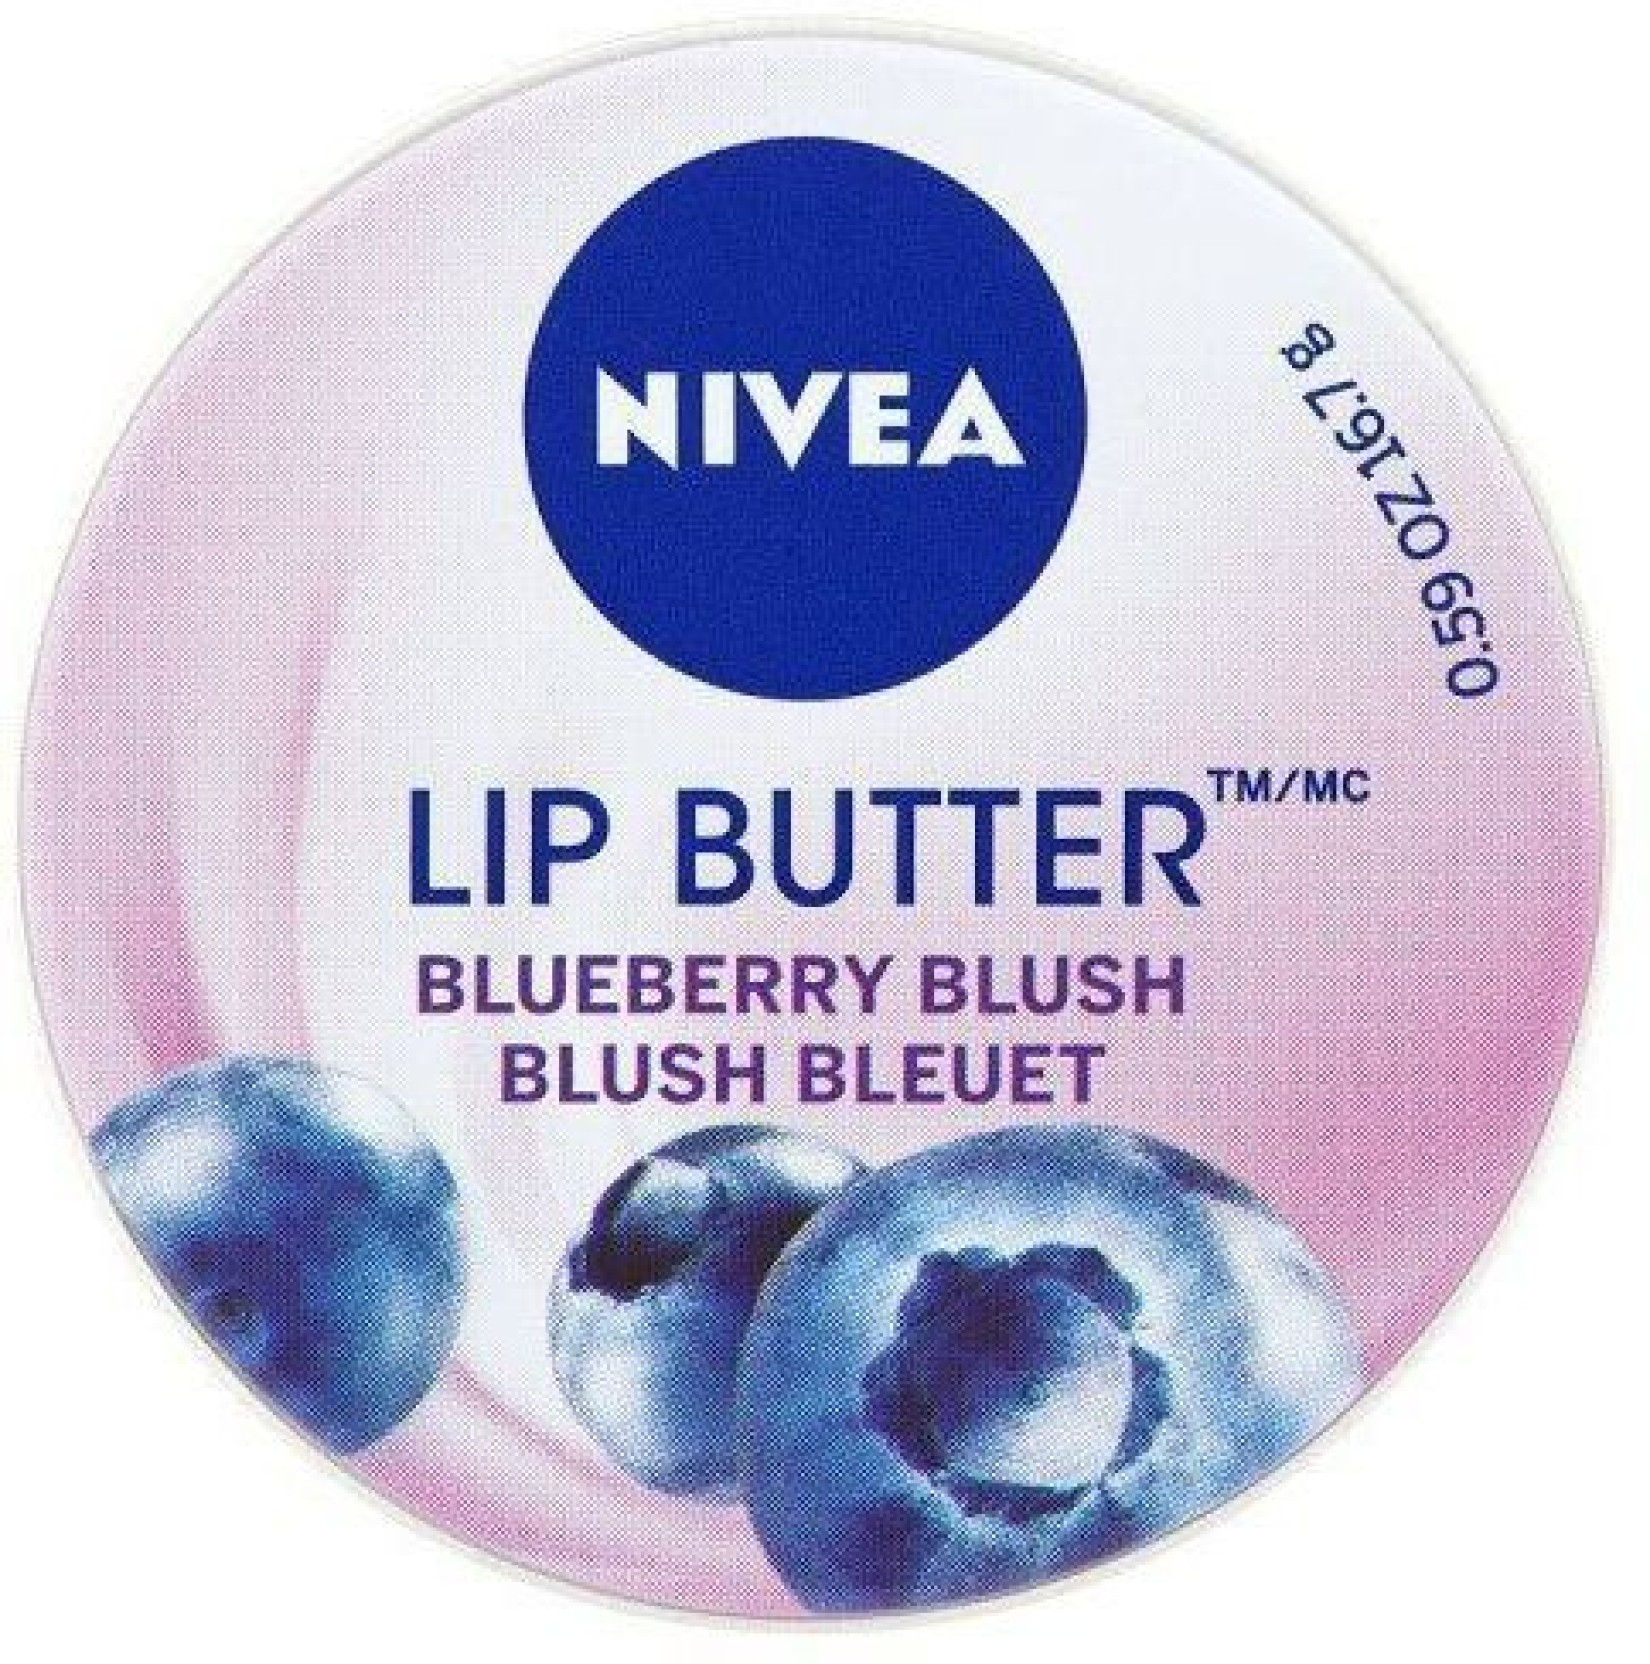 Nivea Lip Butter Blueberry Blush Price In India Buy Share